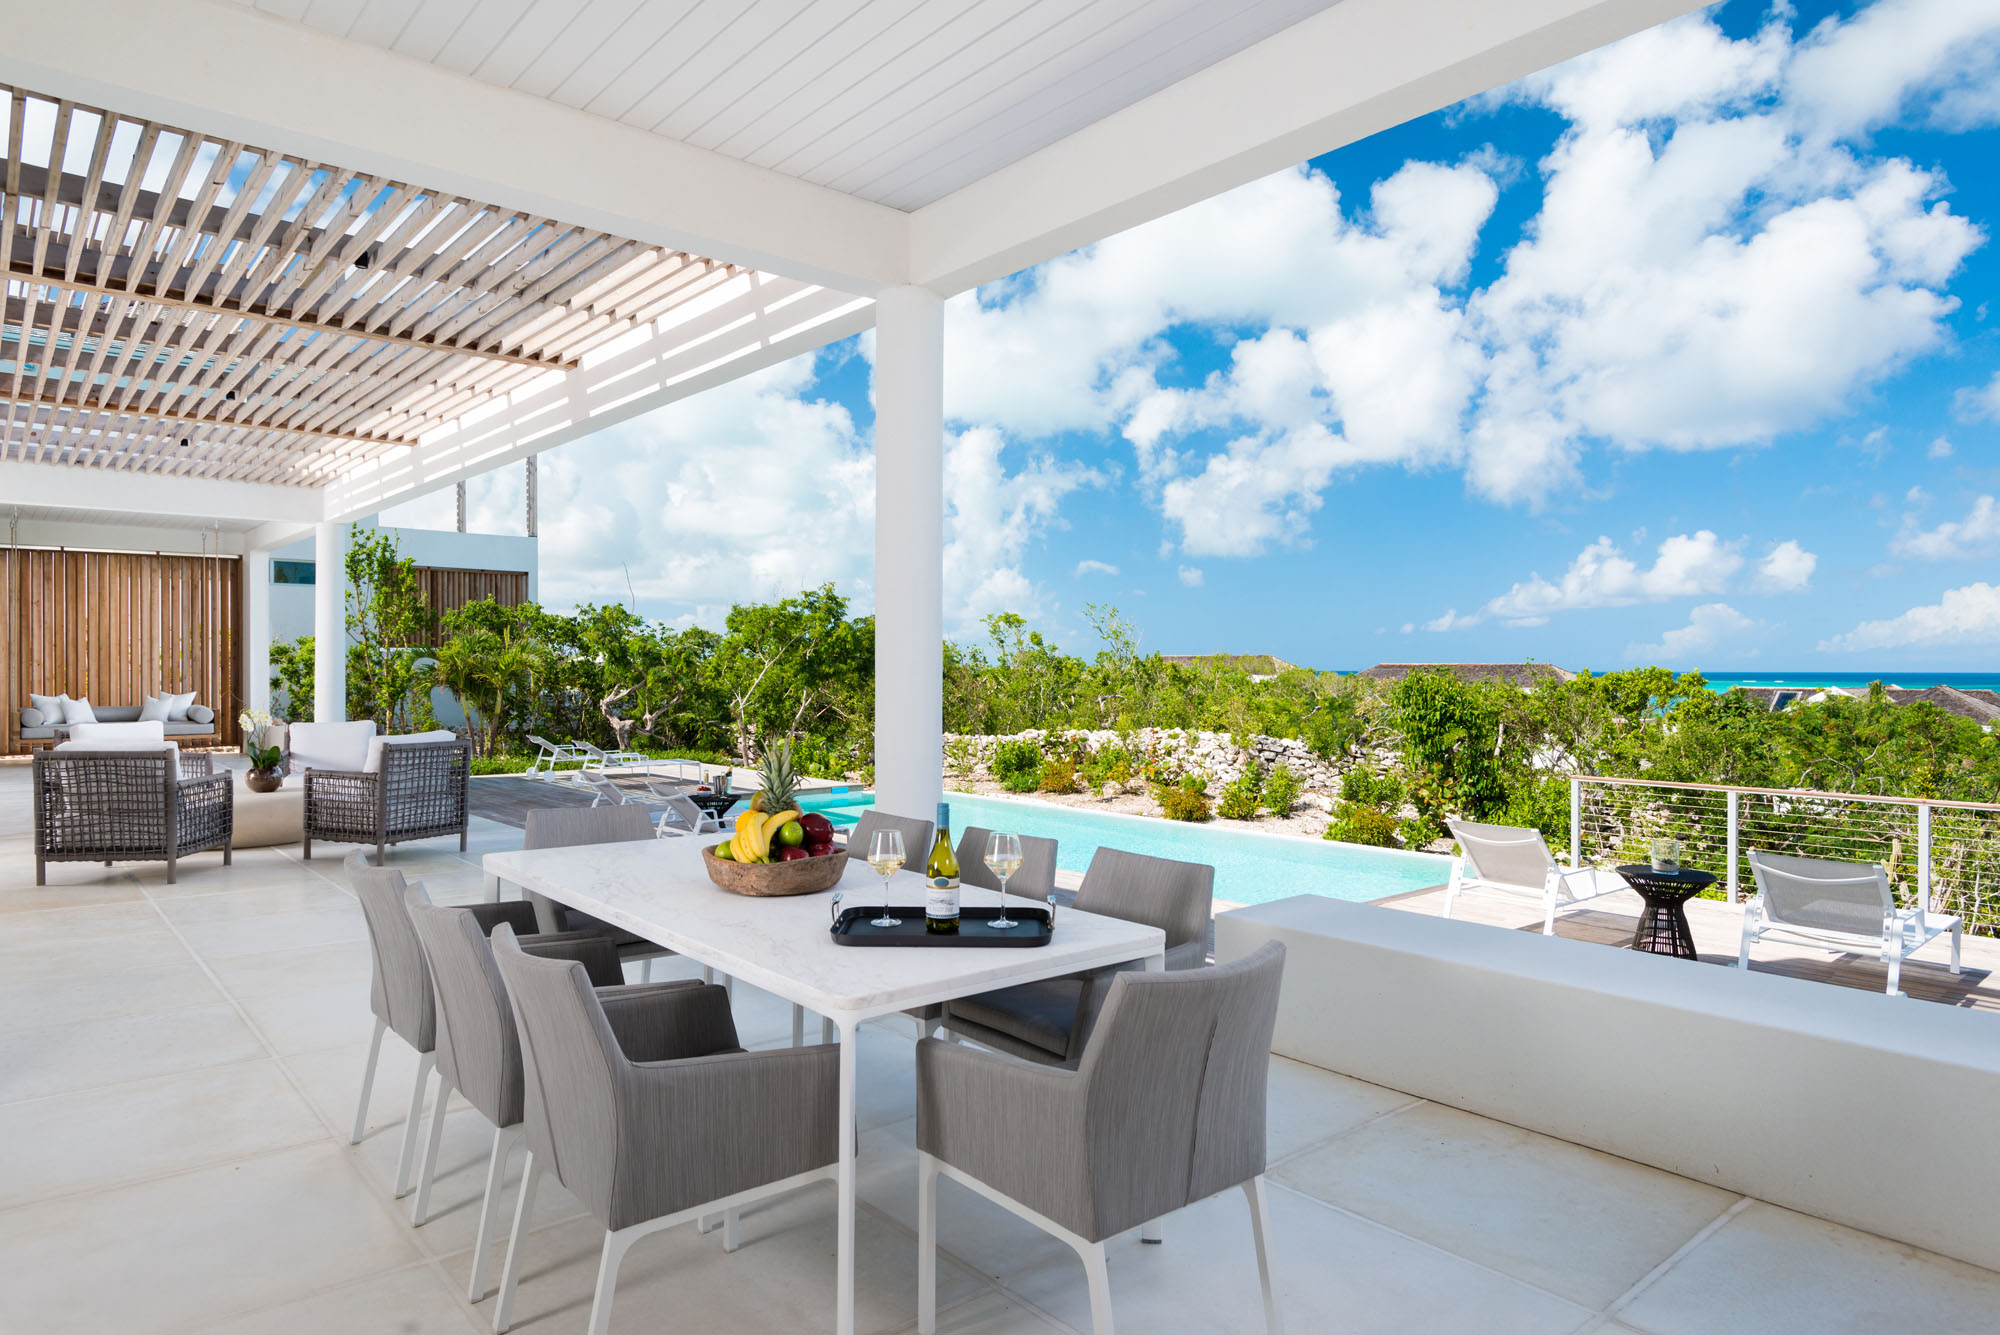 All villas are beautifully decorated throughout at Beach Enclave North Shore ocean view villas, Providenciales (Provo), Turks and Caicos Islands, BWI.